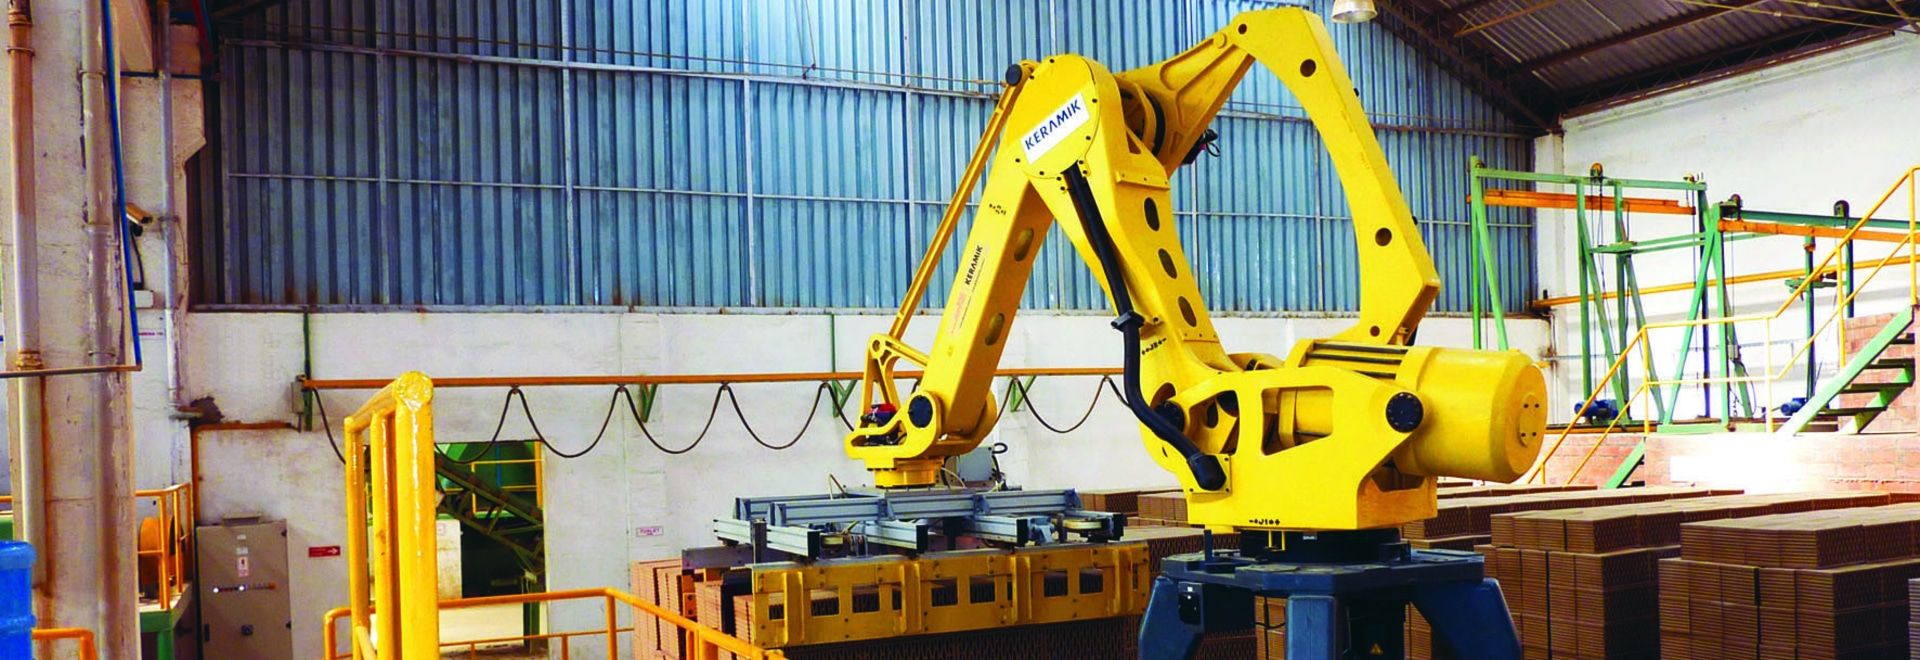 ROBOTIC PALLETIZER & STRETCH WRAPPING LINE IN GLASS WOOL INDUSTRY